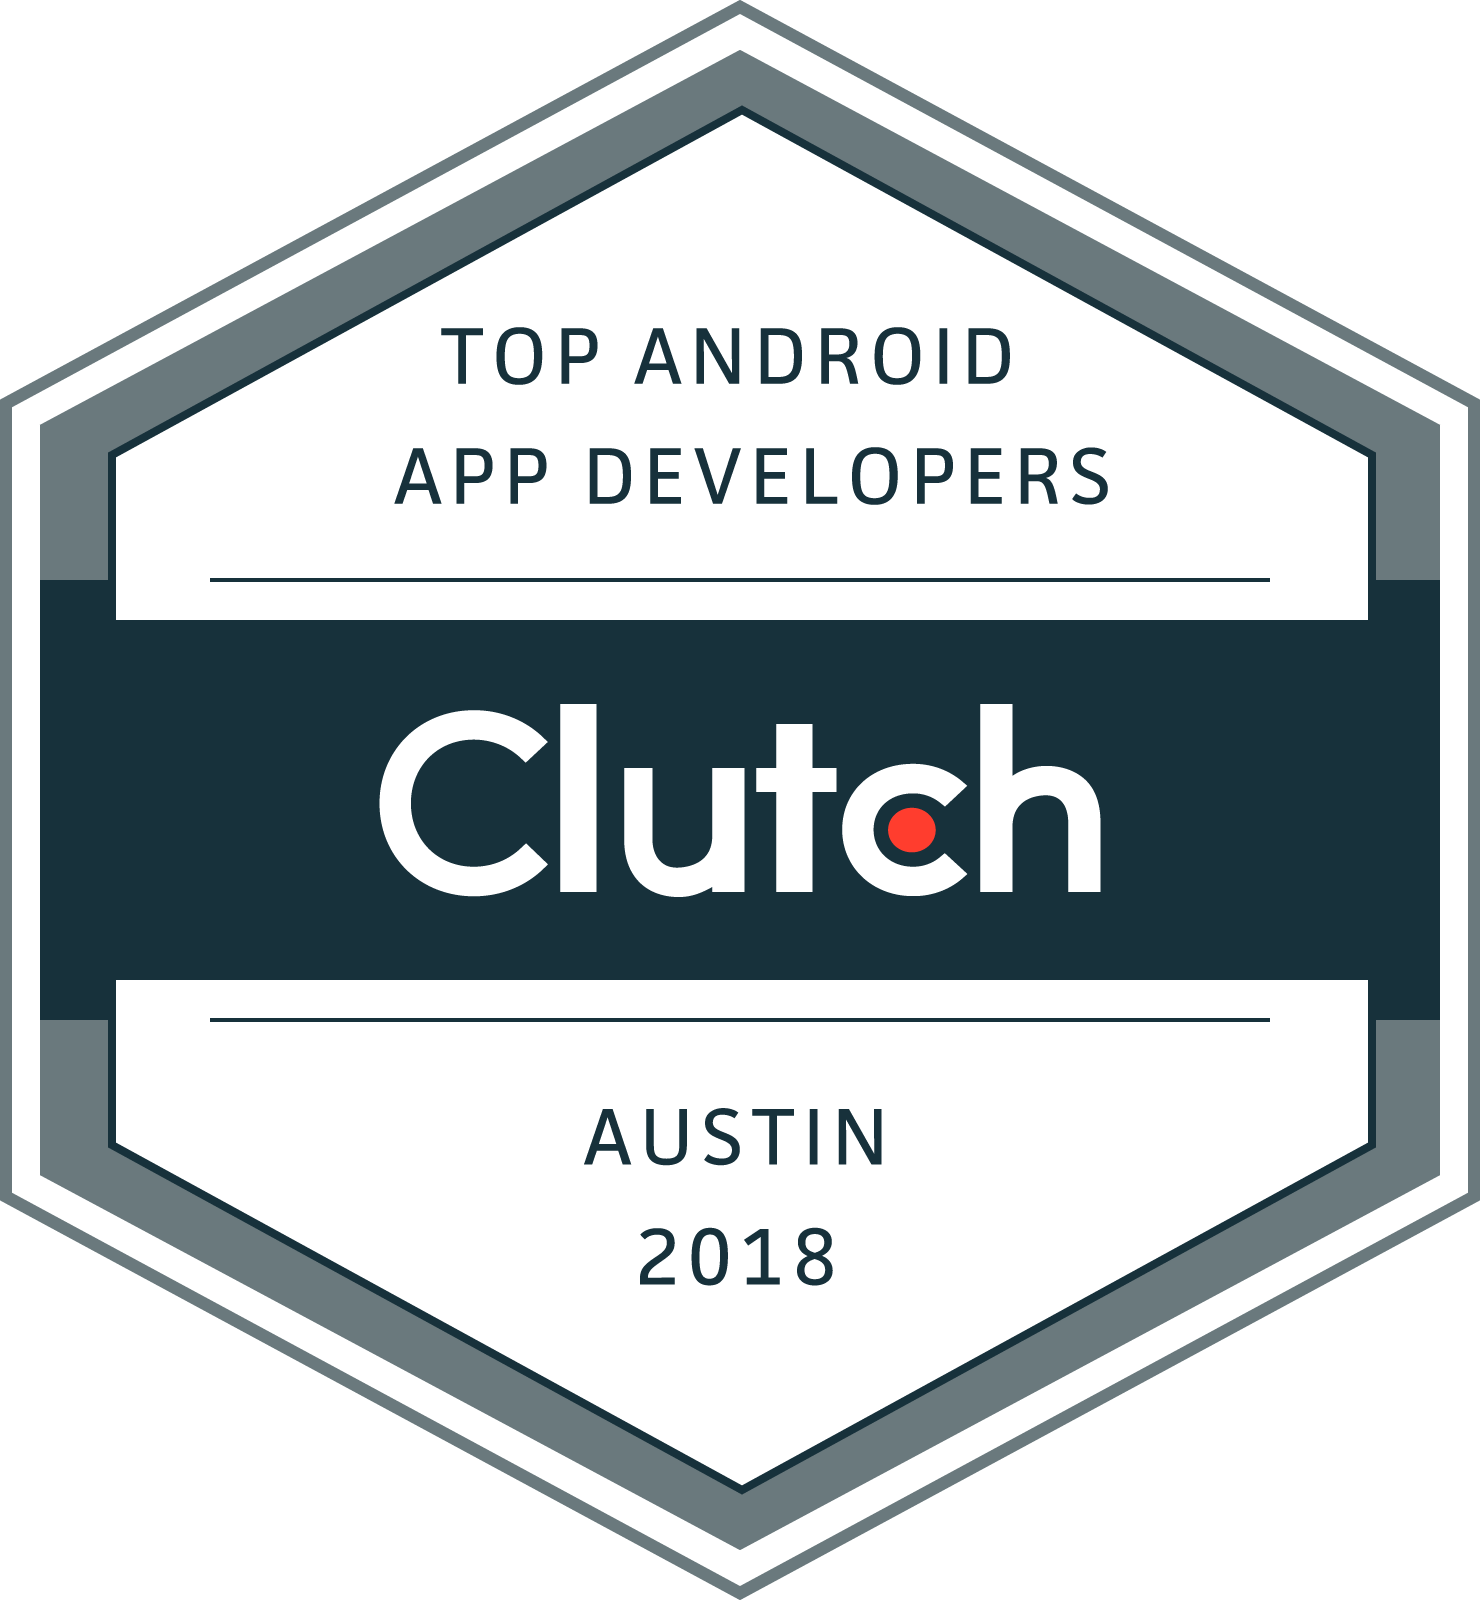 Top Android App Development Comany Austin, TX 2018 Badge